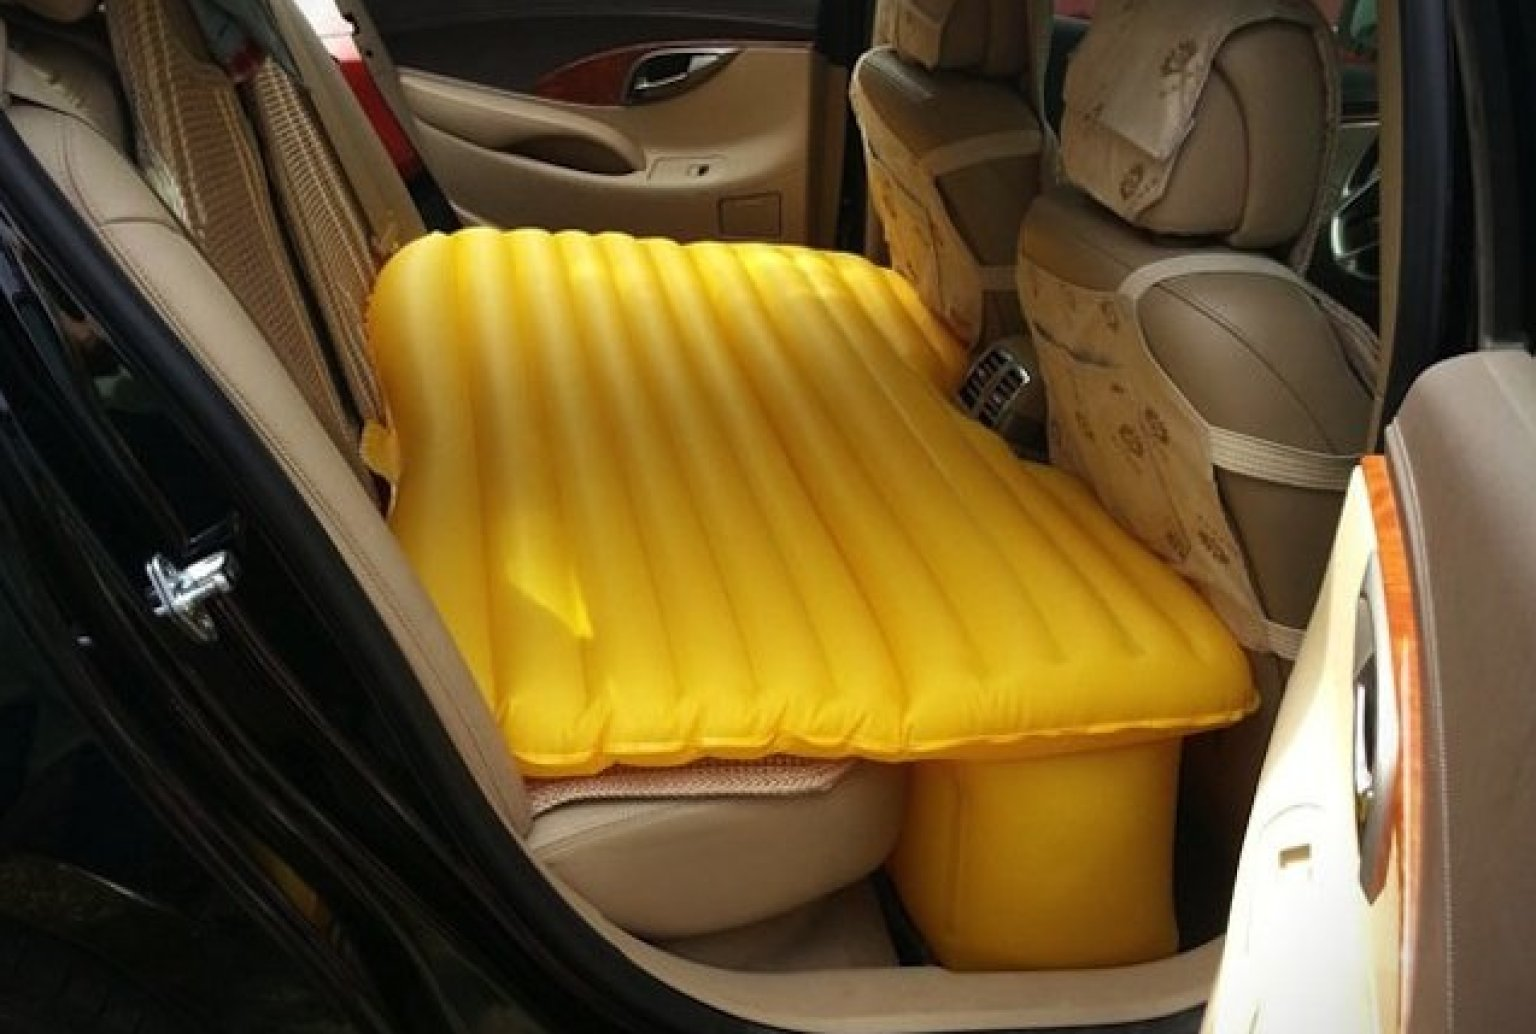 Backseat Inflatable Bed Fuloon Inflatable Car Mattress Turns Backseat Into Full Sized Bed